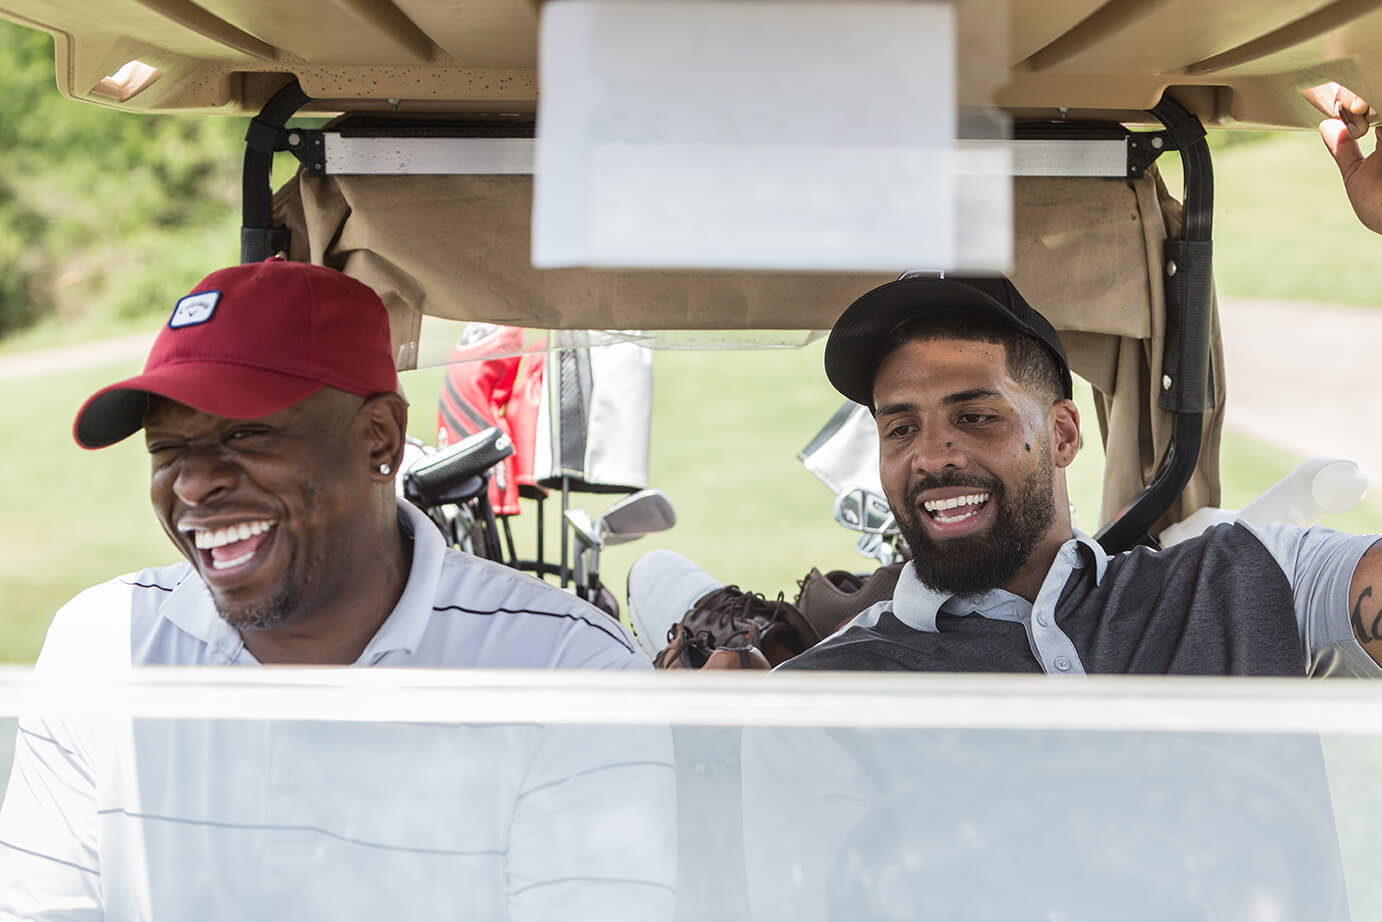 Arian Foster + Scarface